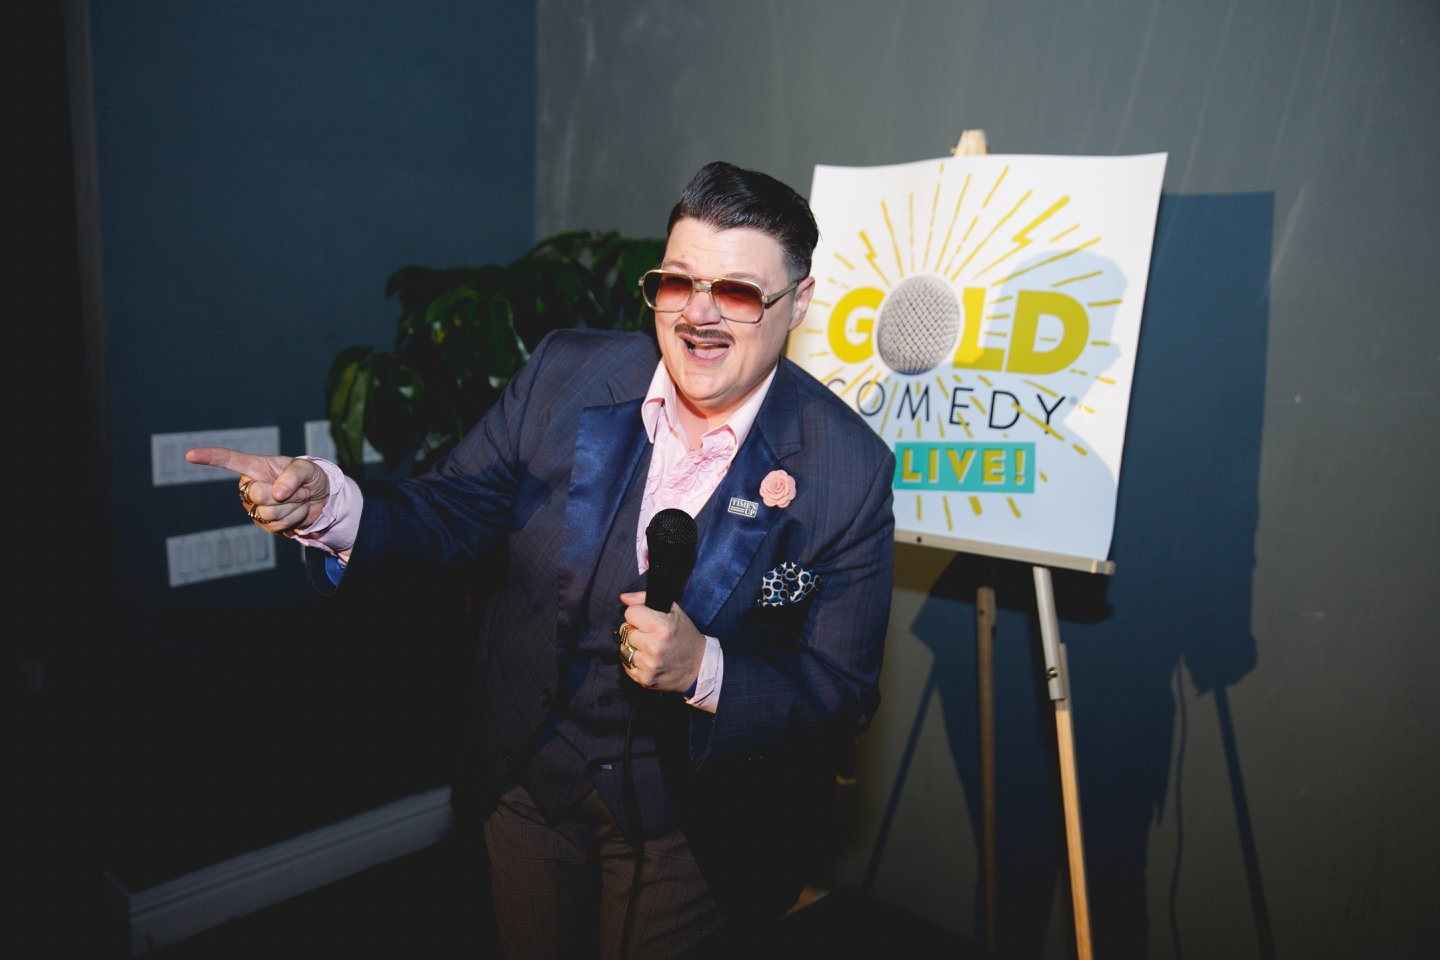 """Murray Hill performing at """"GOLD Comedy LIVE!"""", Photo Credit: Noel Woodford"""